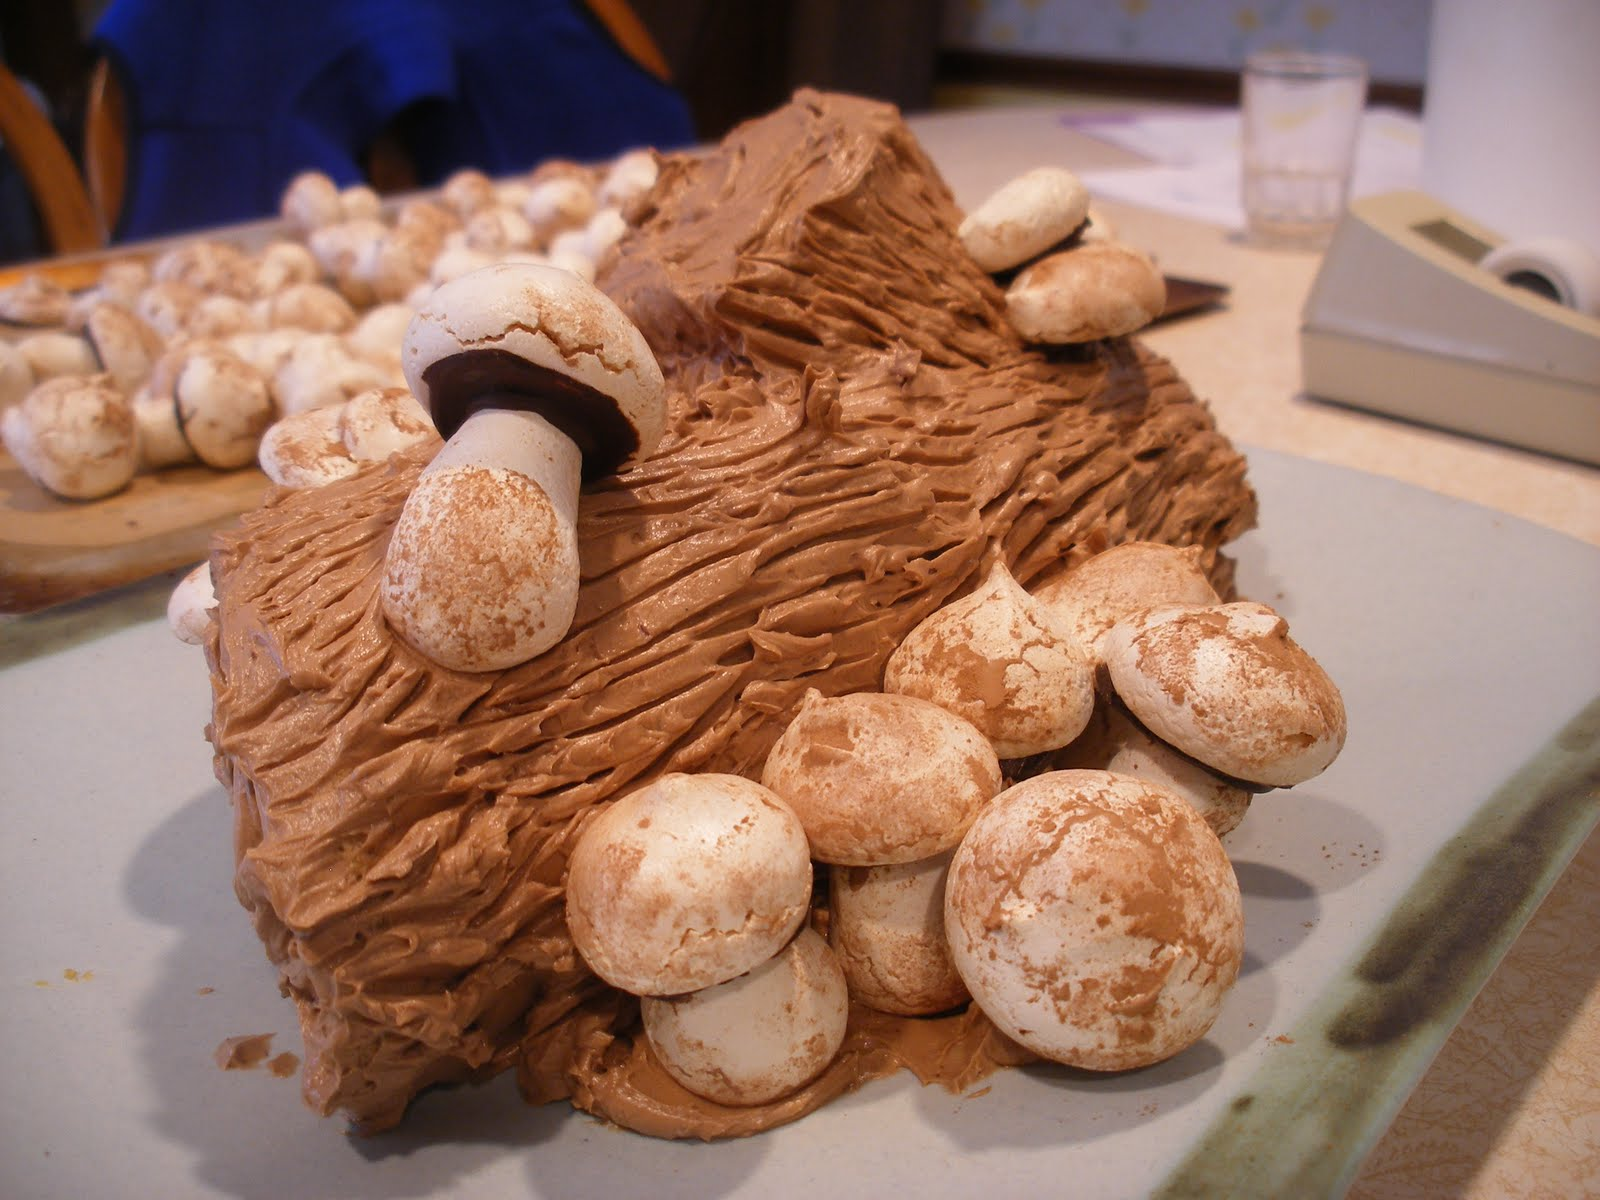 The Other Side of Somewhere: Buche de Noel!